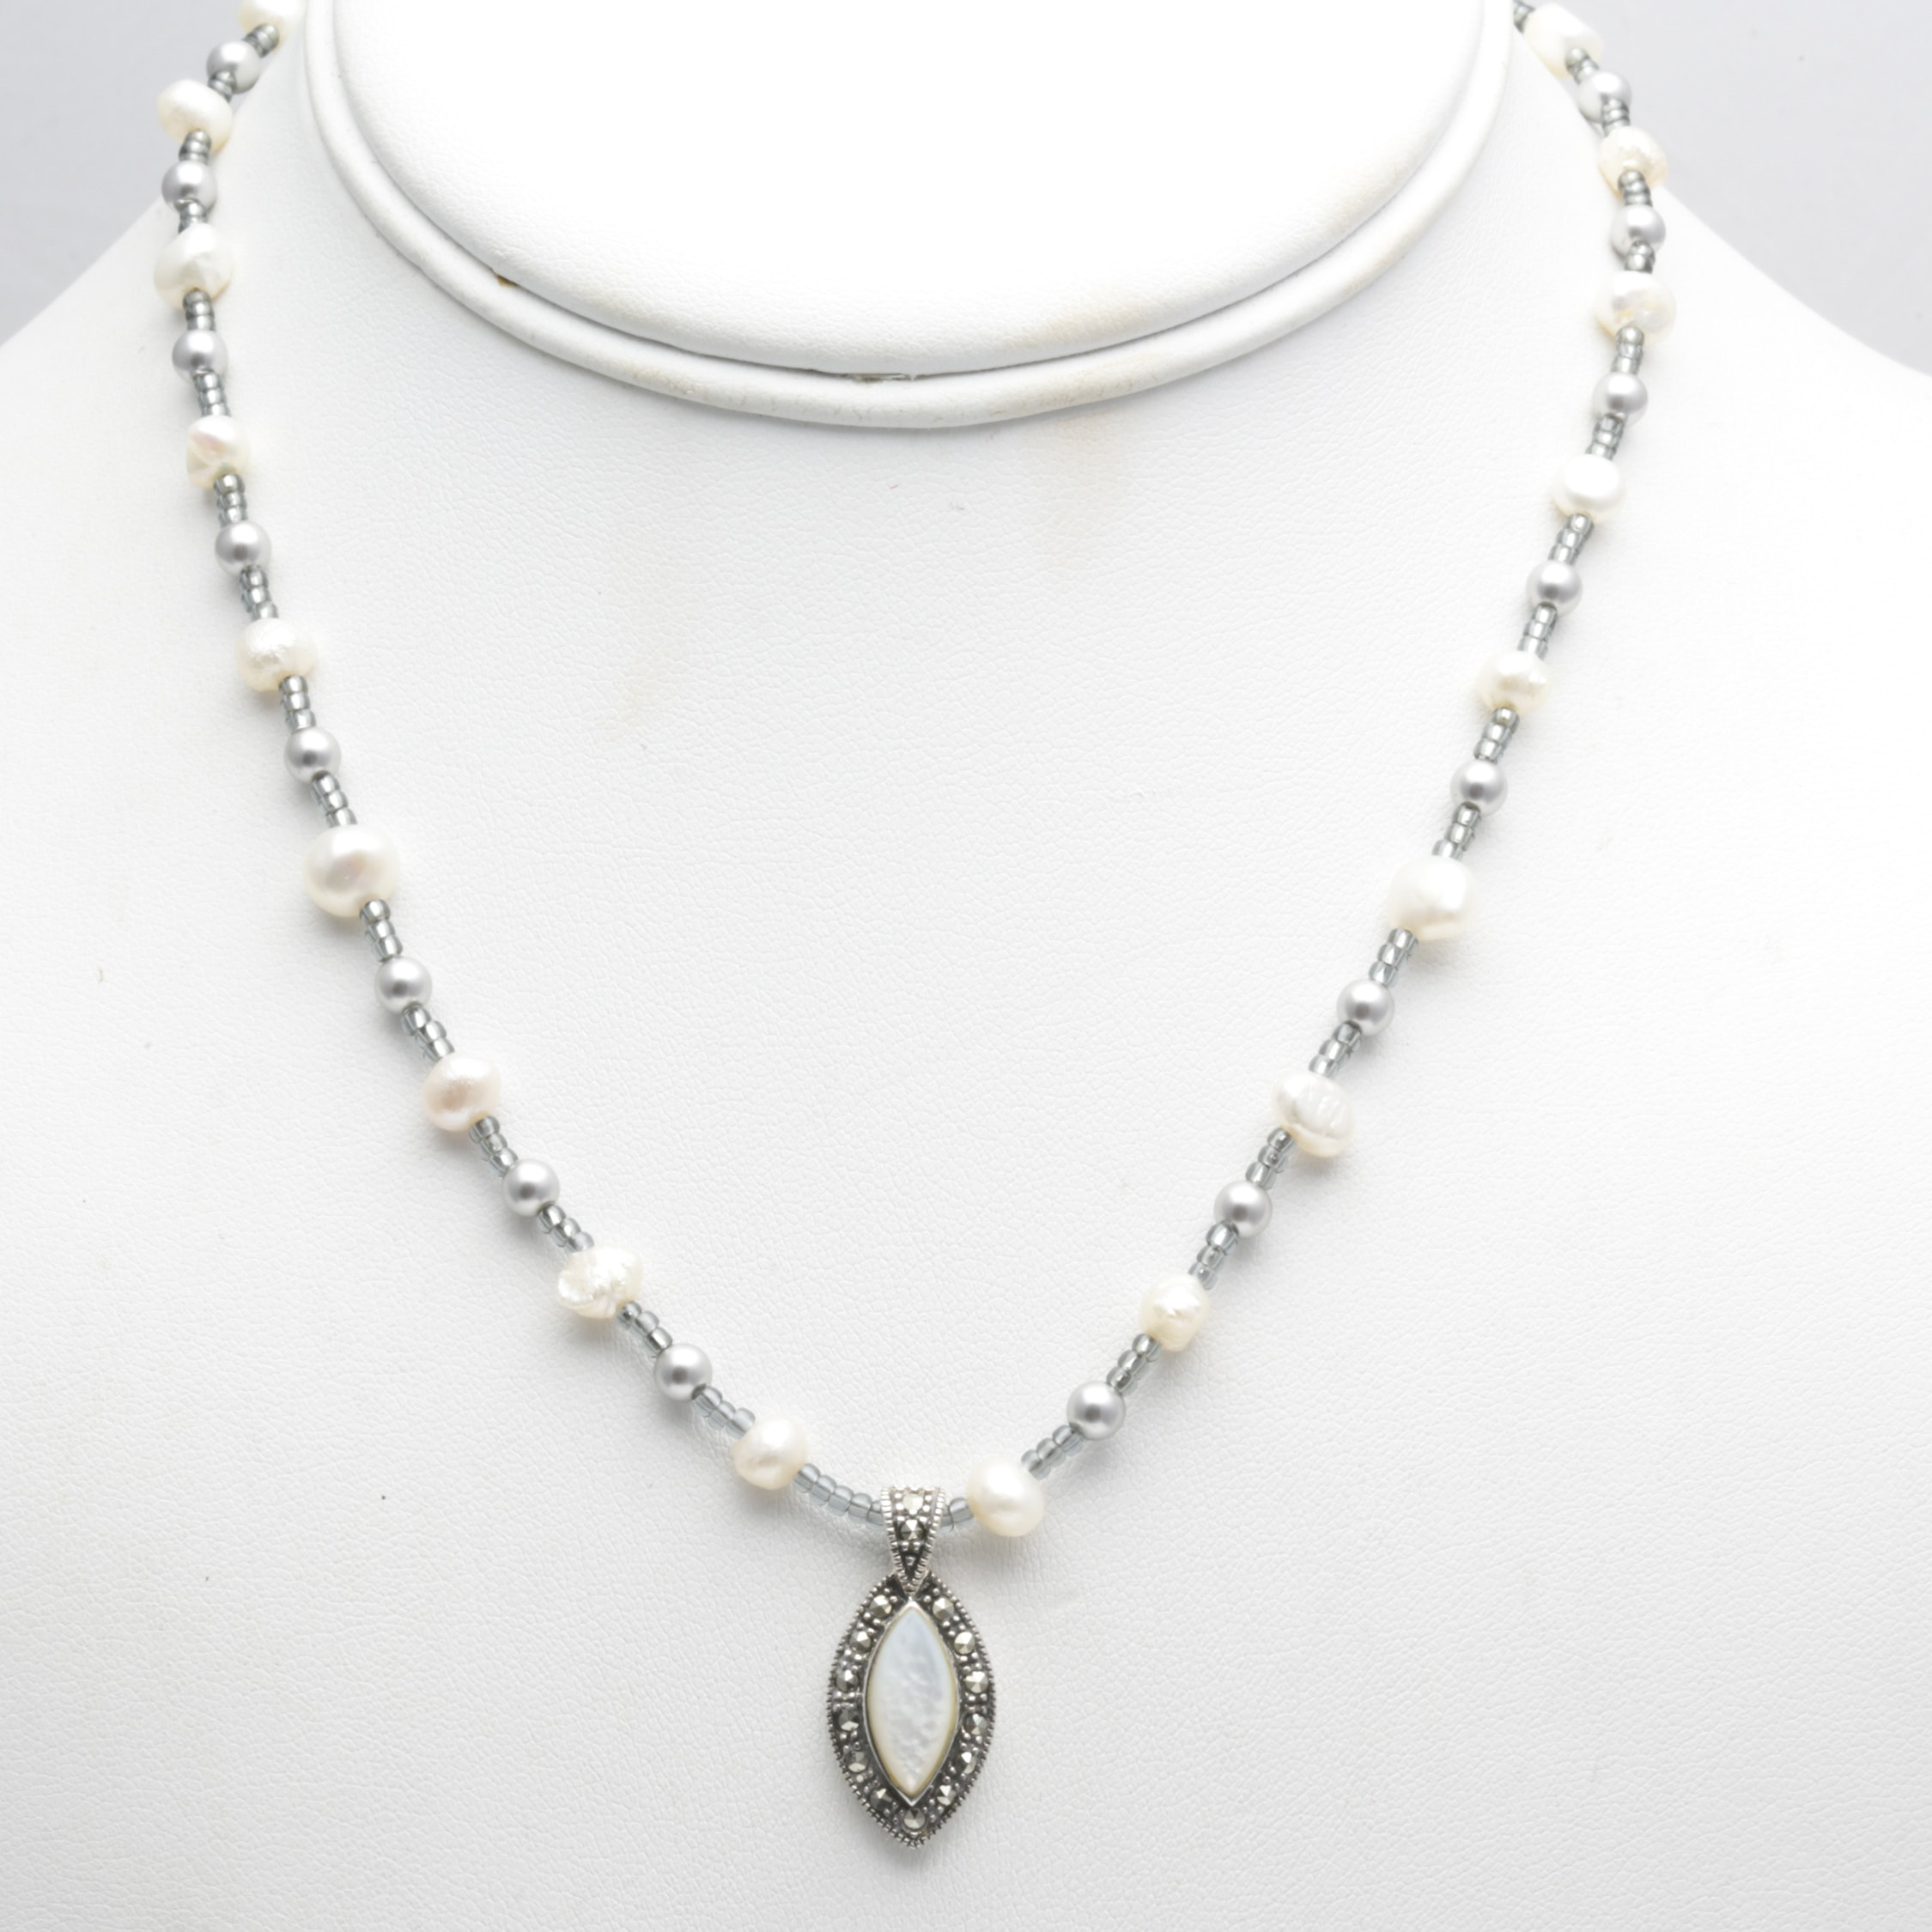 Vintage Collection Of Vintage Pearl Necklaces Including Silver, Mother of Pearl,